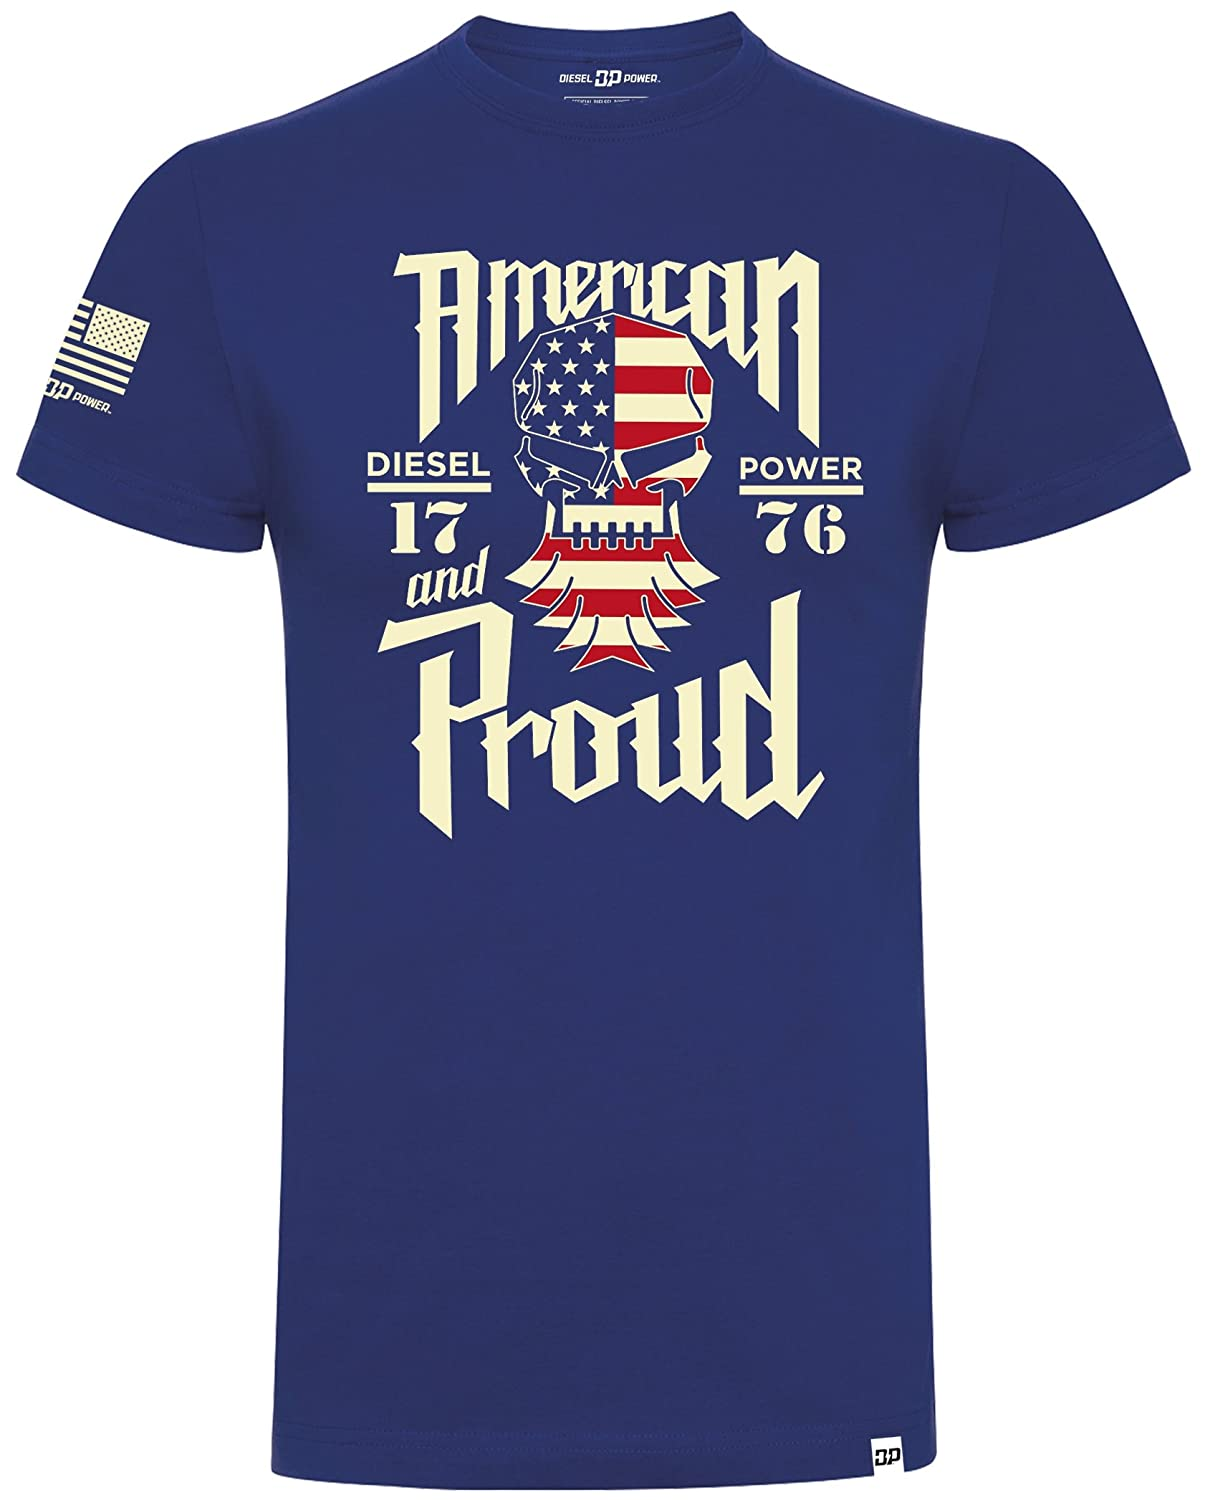 Diesel Power DPG Gear T-Shirt American and Proud Royal Blue